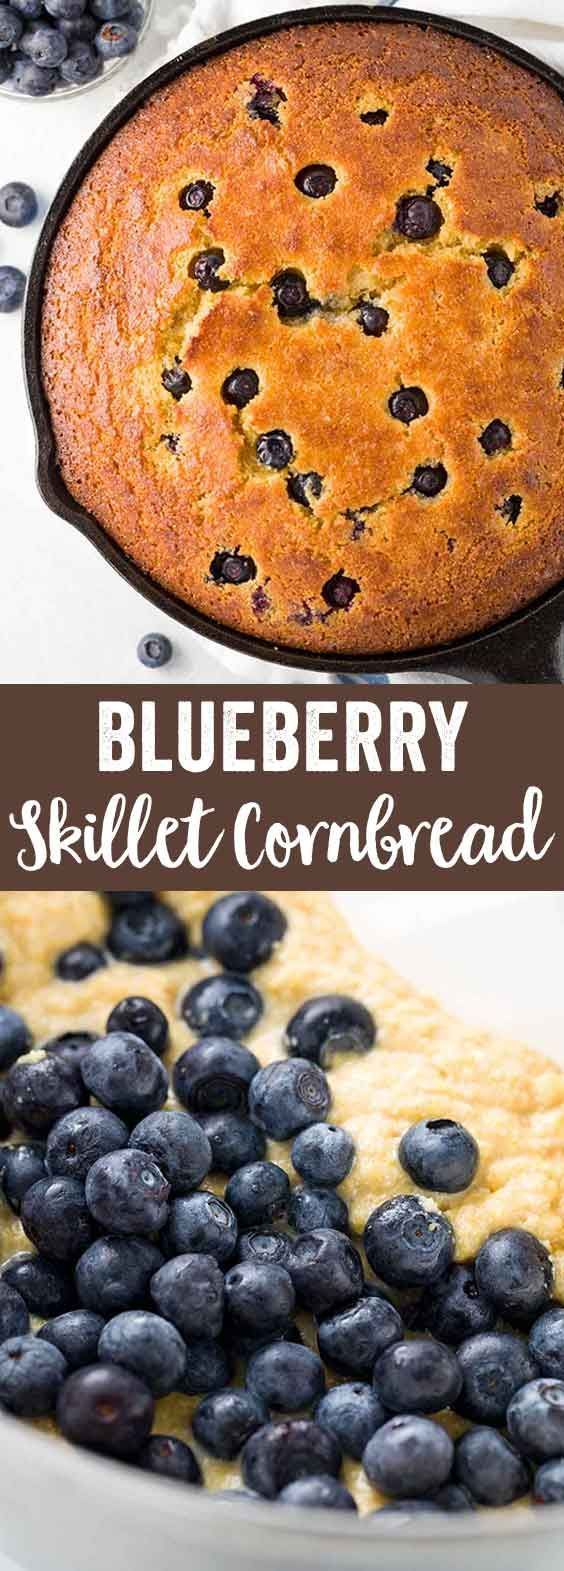 Cast iron skillet cornbread with blueberries and baked until golden brown. Whole wheat quick bread cooks in a pan for crisp edges, but with a moist cake center.  via @foodiegavin